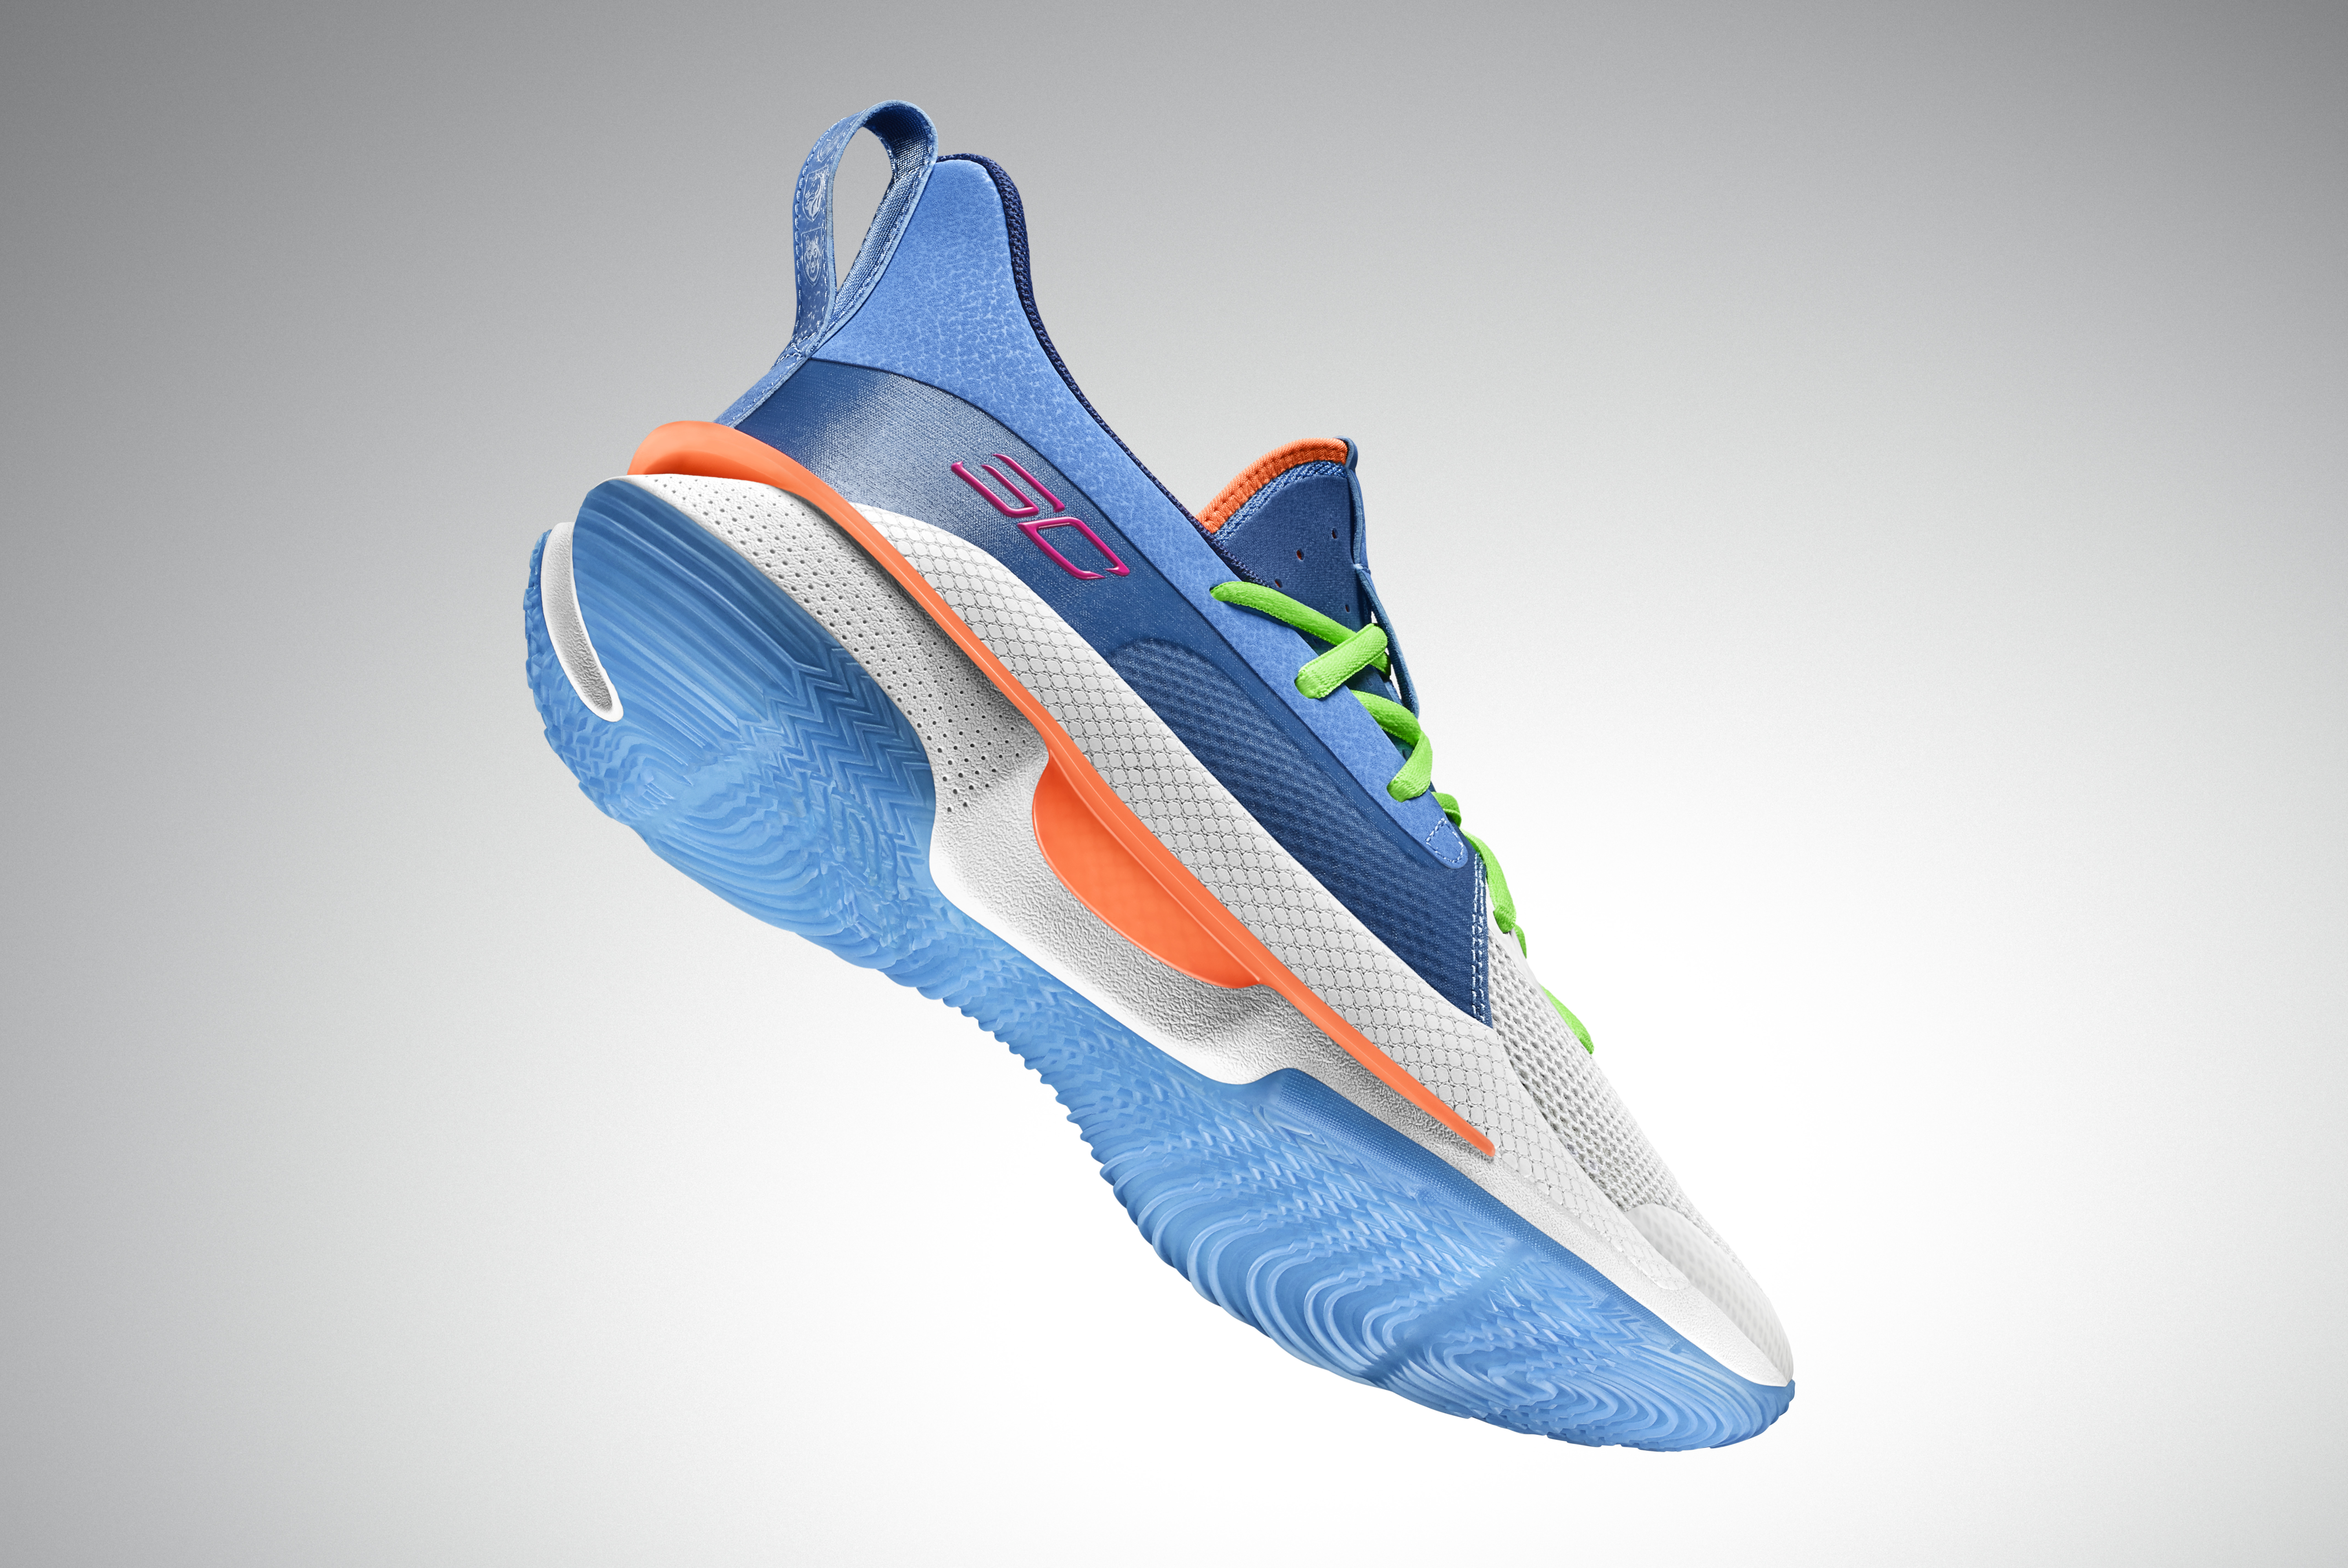 Under Armour Curry 7 'Nerf Super Soaker